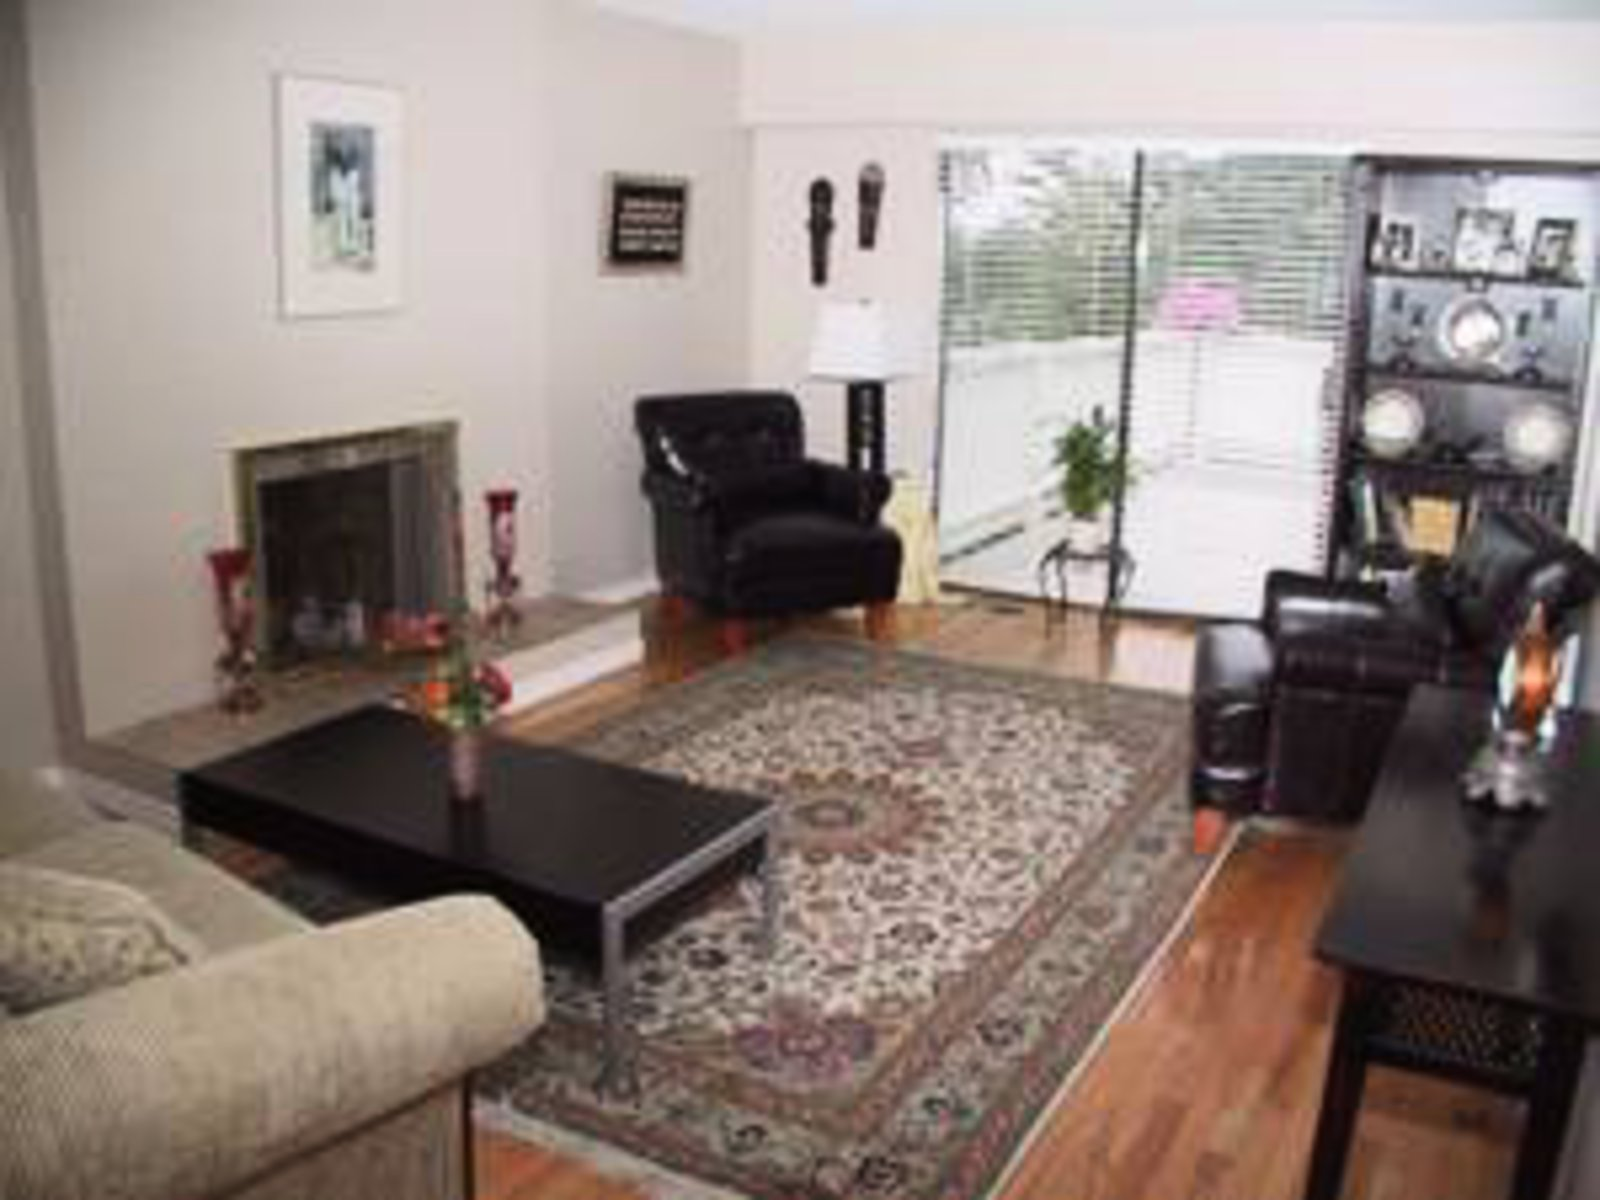 Living Room Hardwood floors, gas firepalce opening to kitchen and sundeck